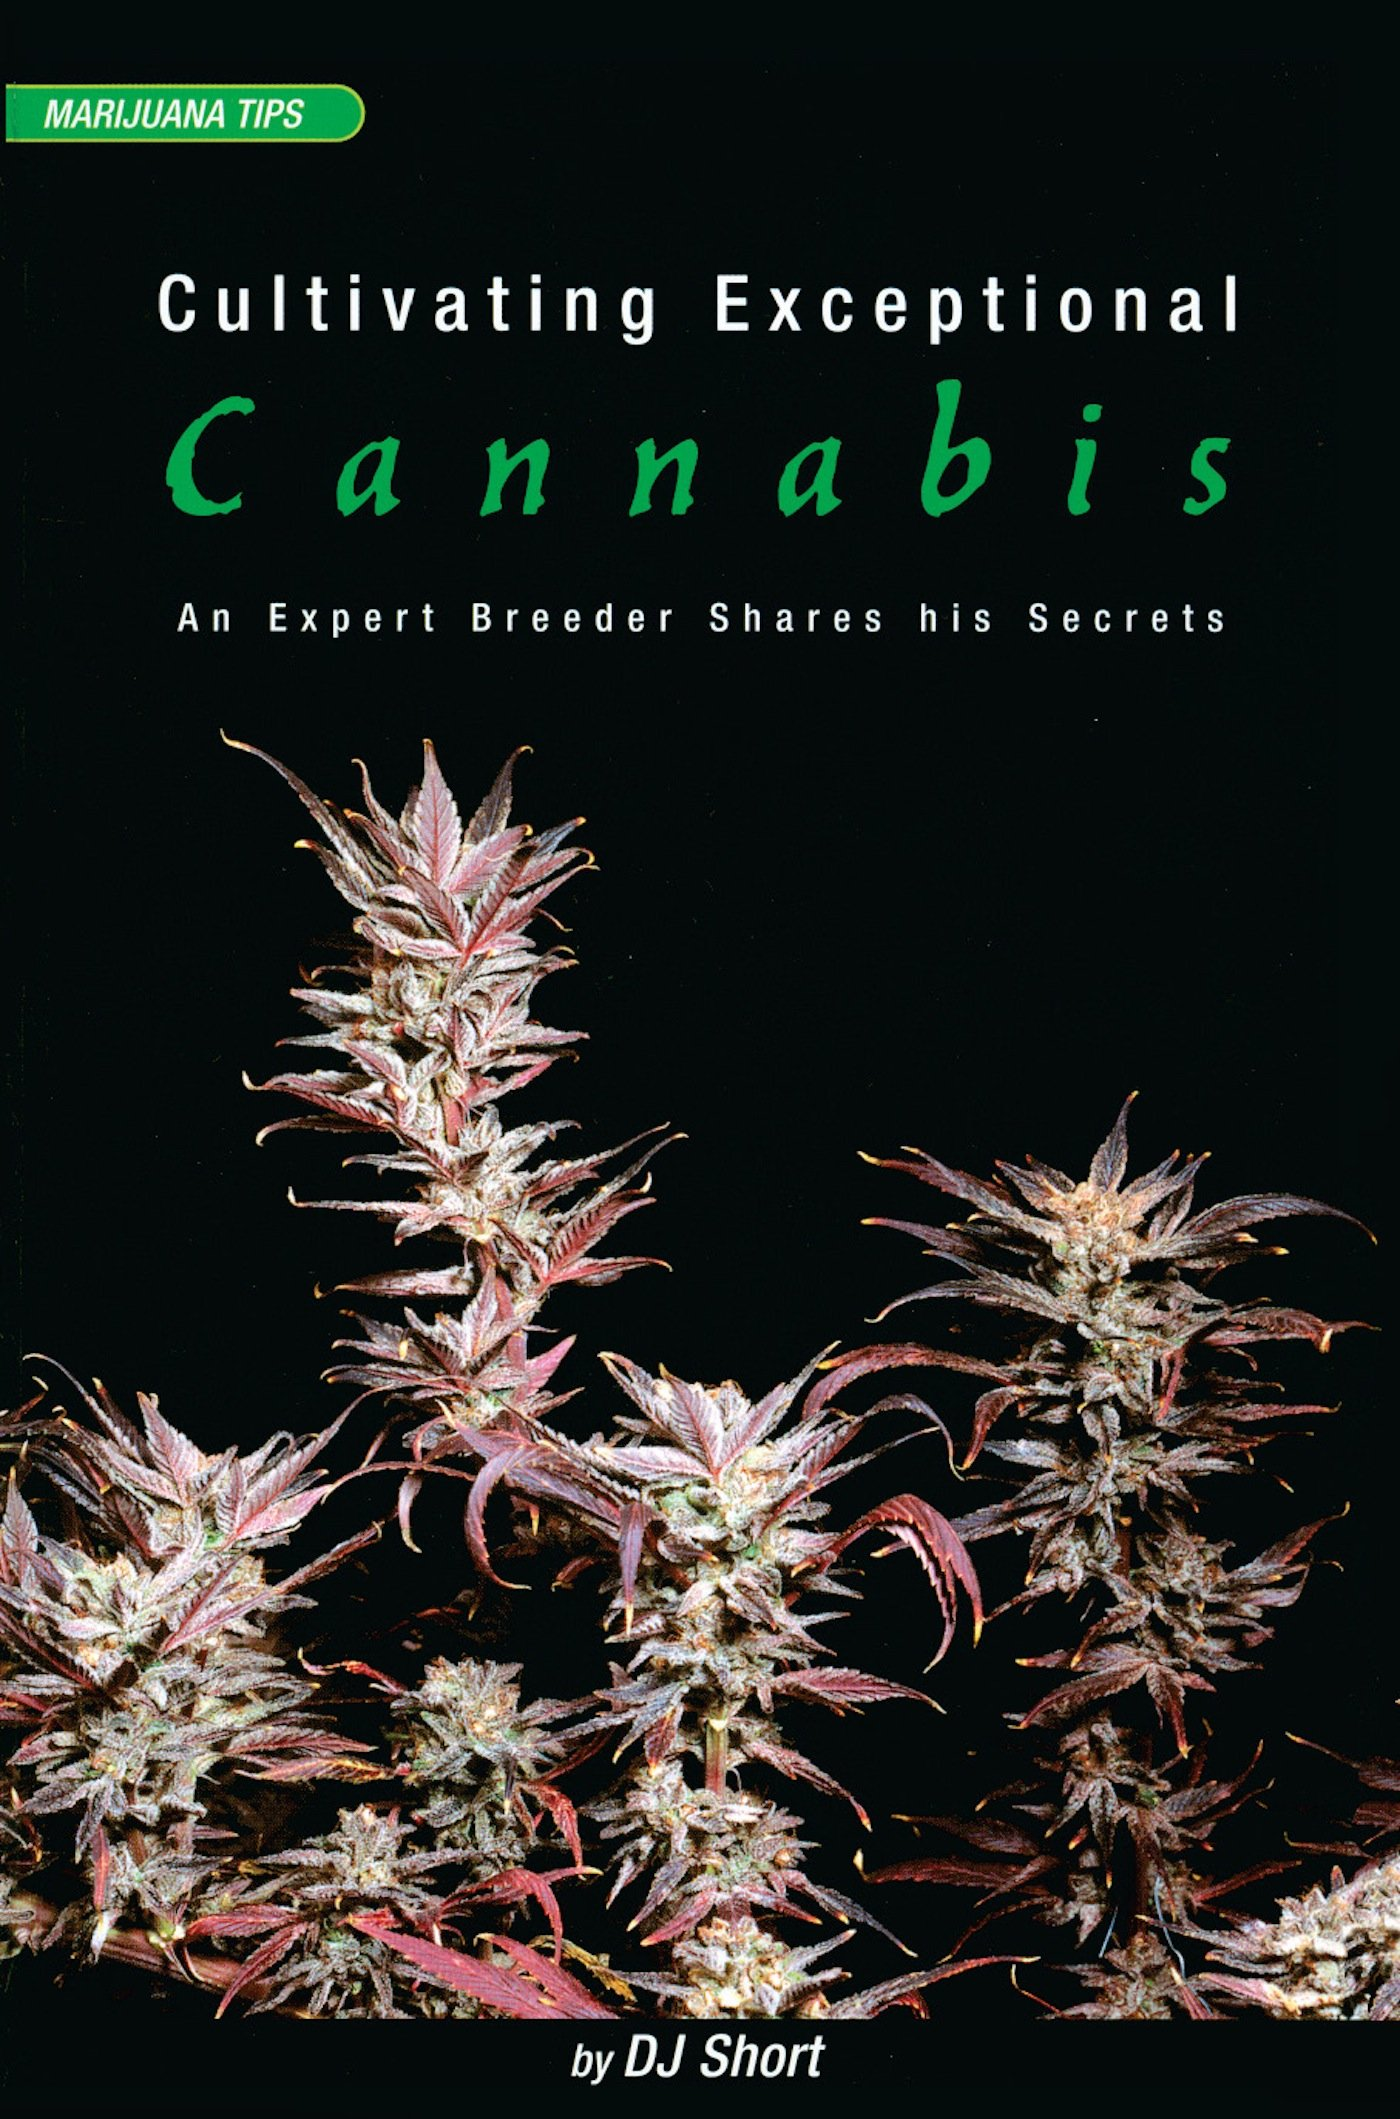 Cultivating Exceptional Cannabis: An Expert Breeder Shares His Secrets (Marijuana Tips Series) (English Edition)